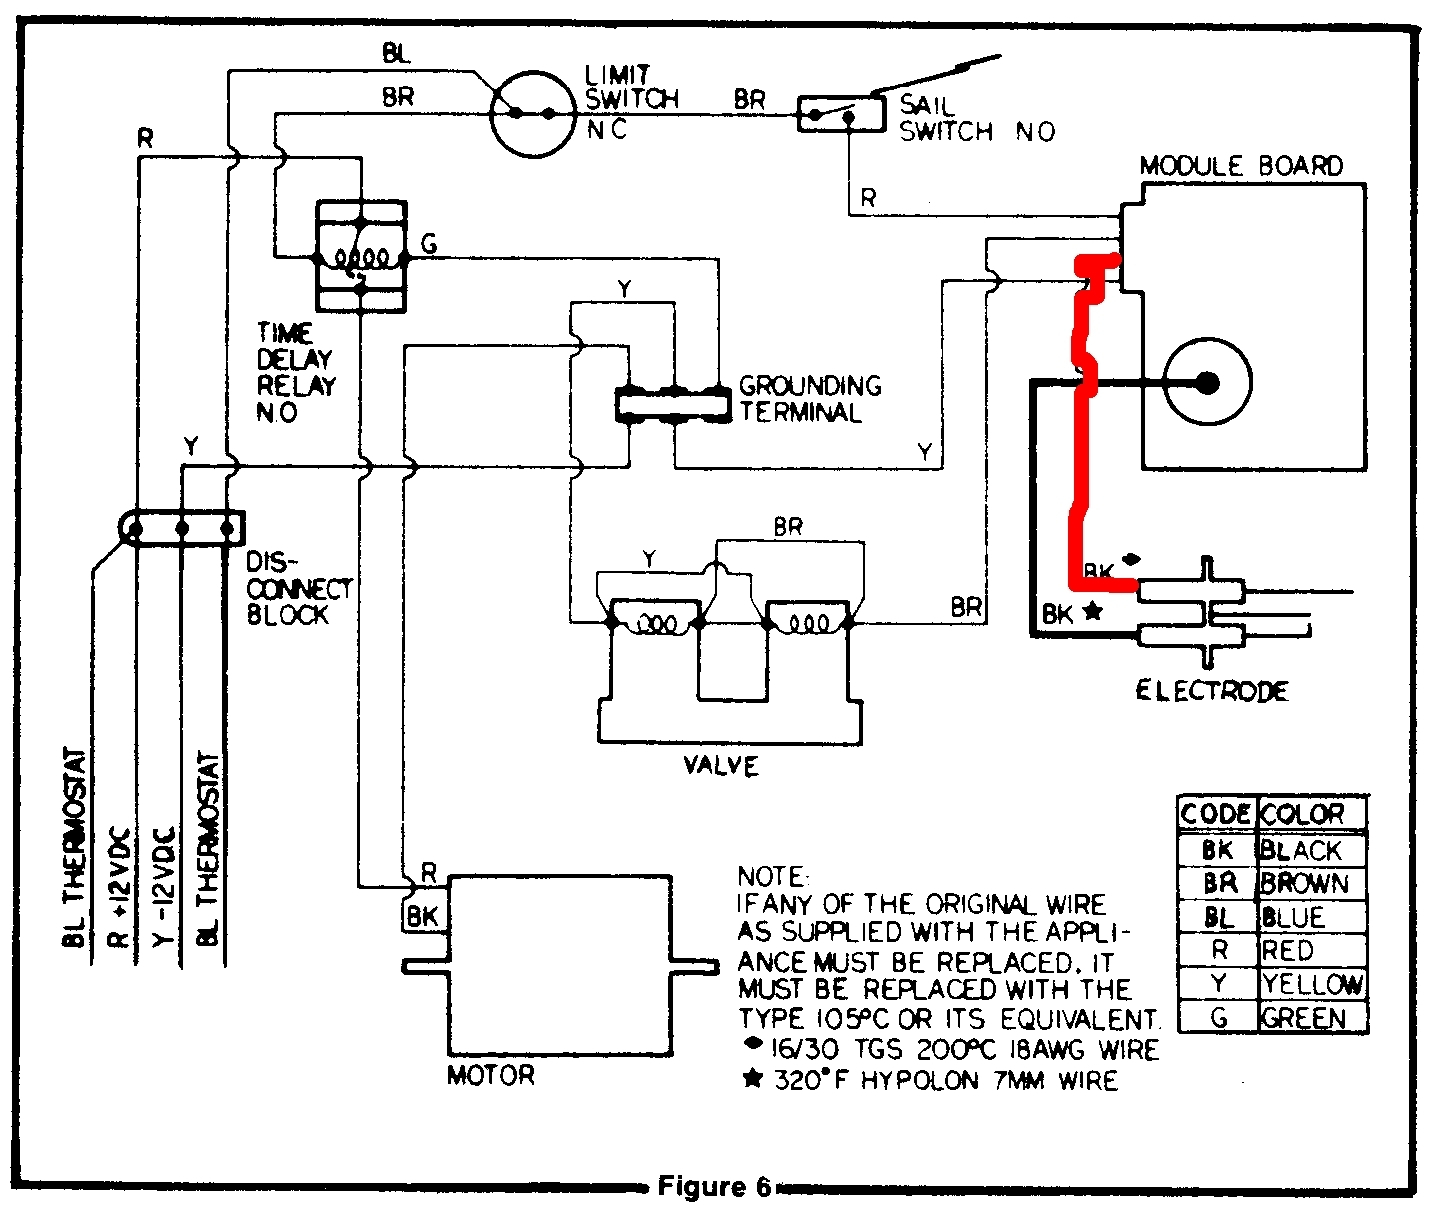 hight resolution of find out here dometic digital thermostat wiring diagram sample coleman rv ac wiring diagram dometic digital